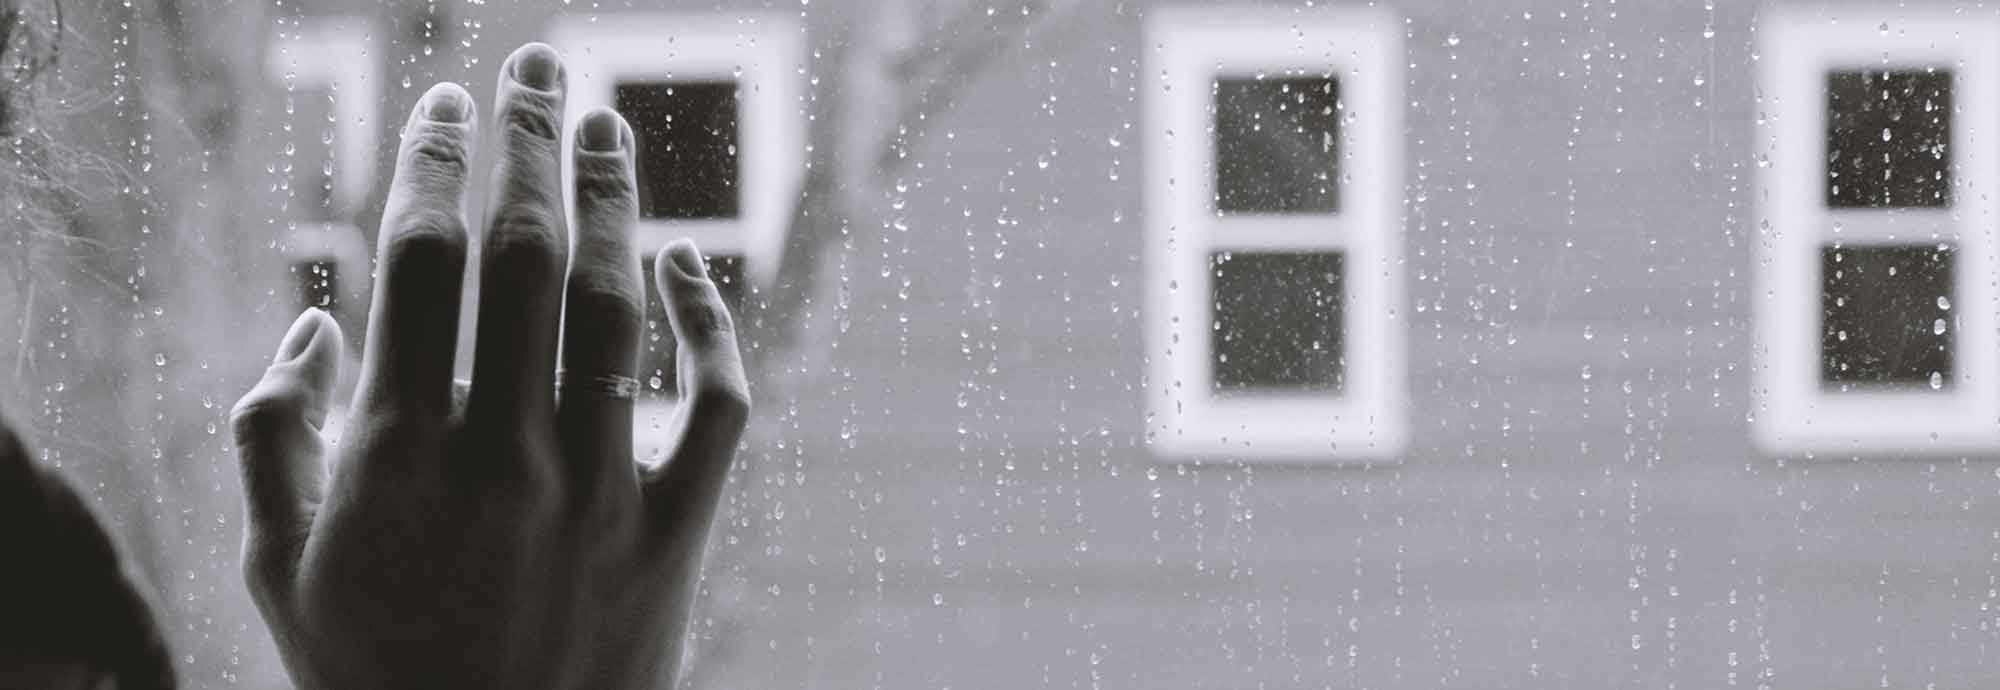 someone's hand placed on a rainy window, looking out at other windows